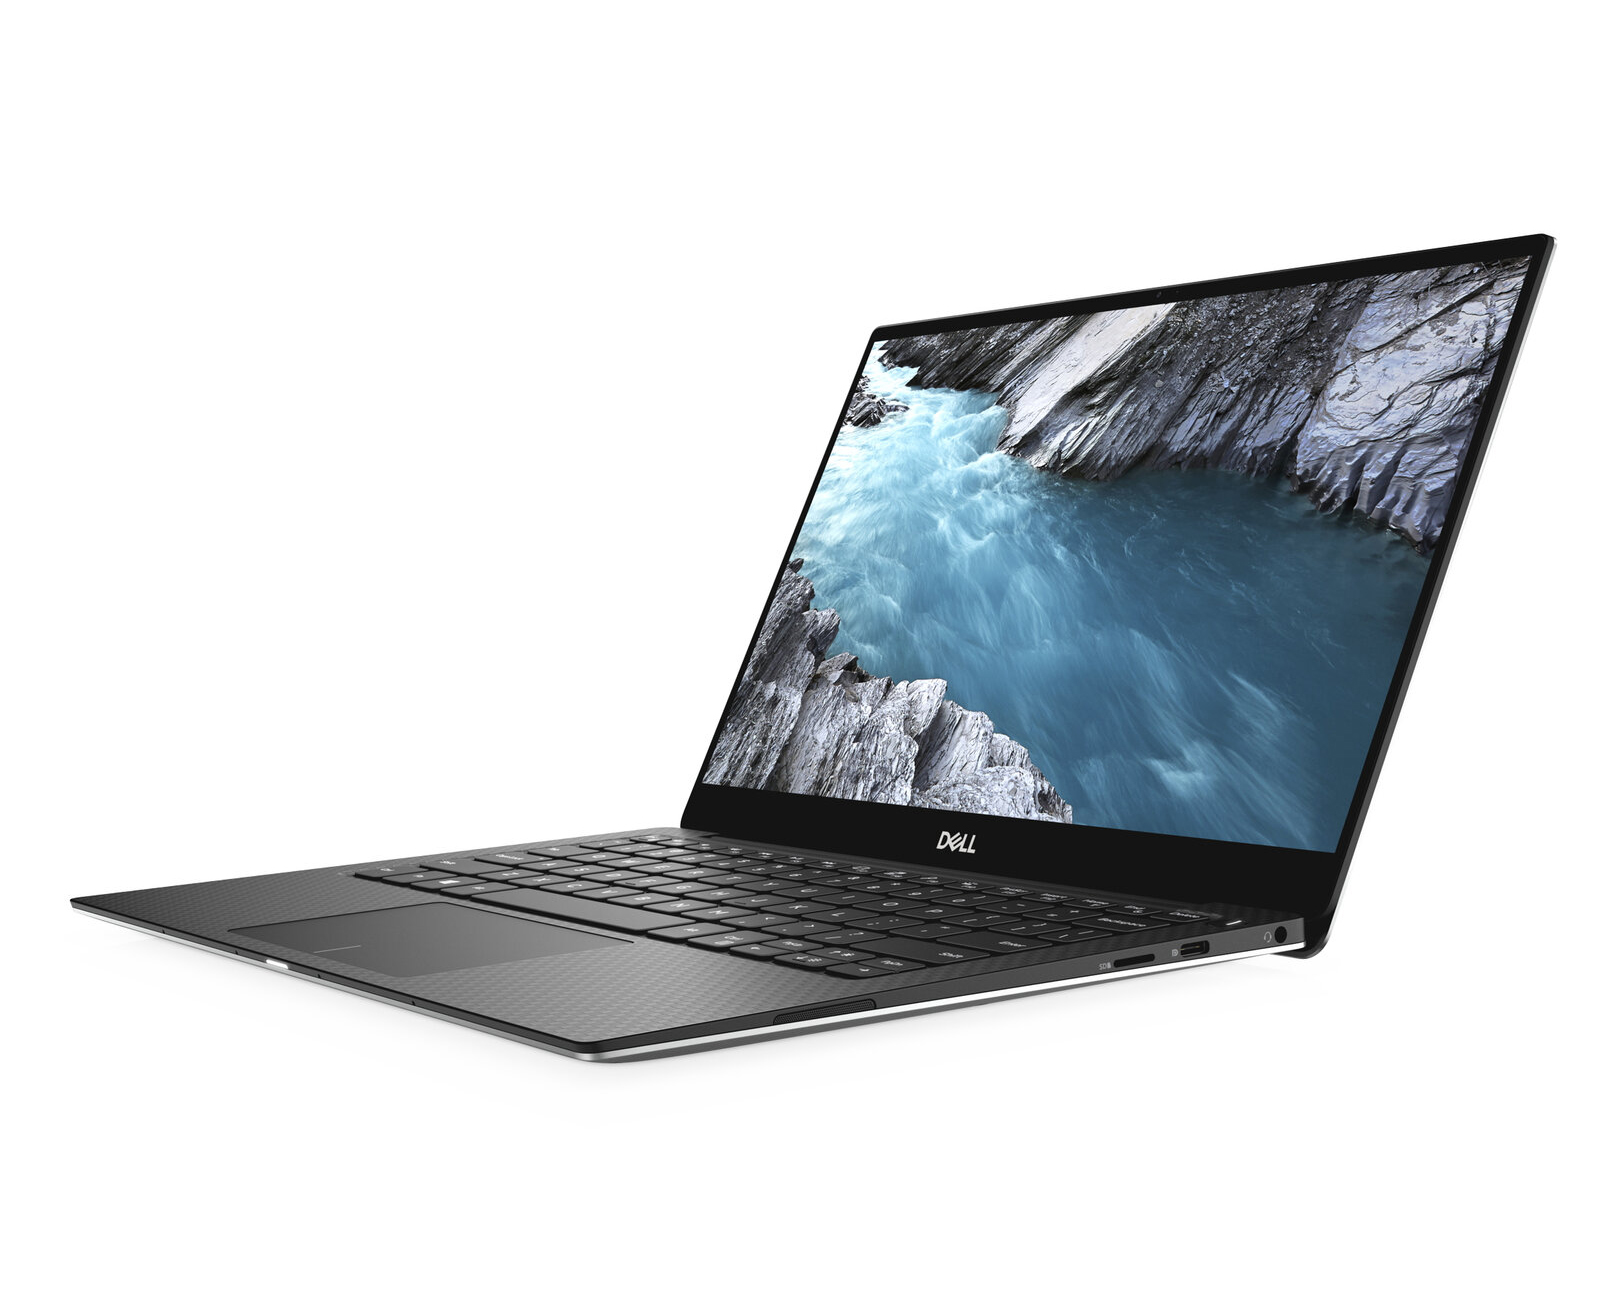 DELL XPSDIMENSION XPS SAMSUNG SD-616T DRIVERS FOR WINDOWS